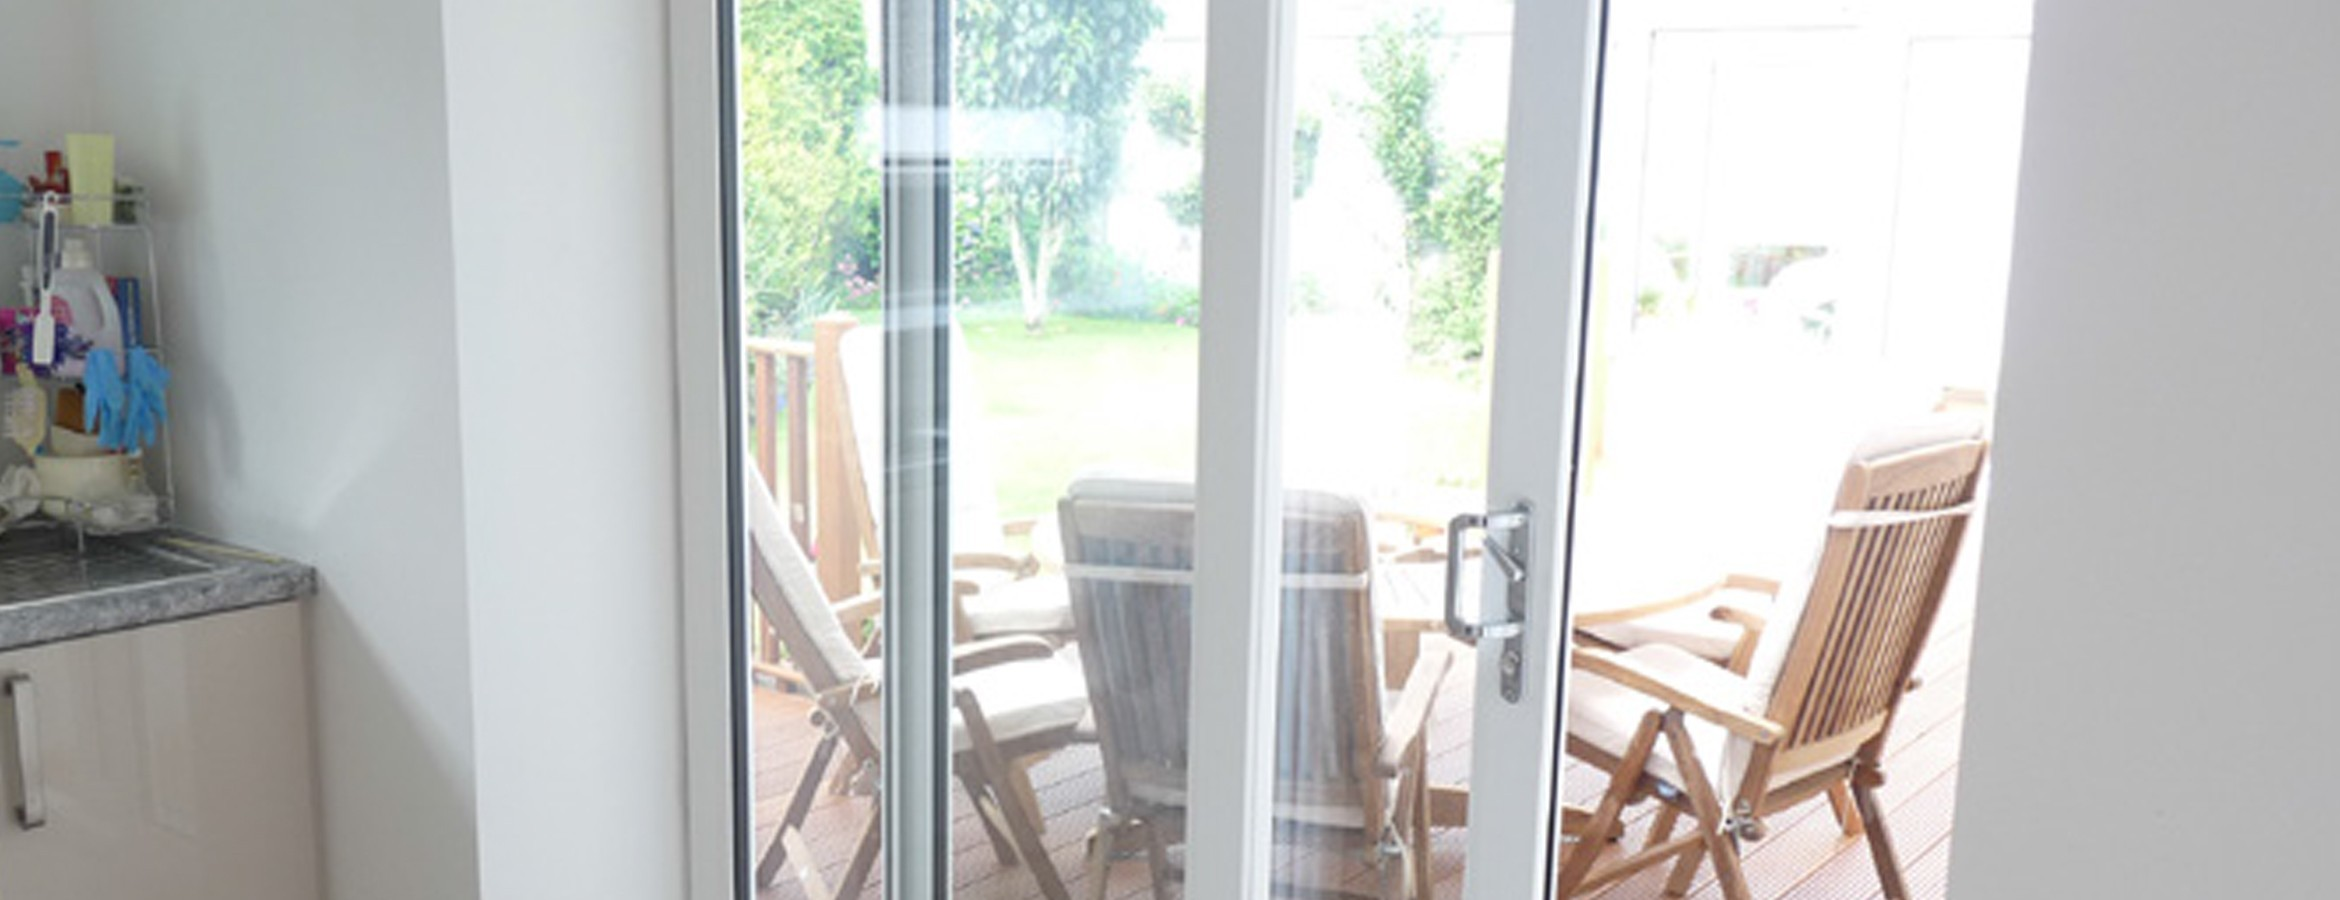 Awc Home Improvements Sliding Patio Doors In Oldham Manchester